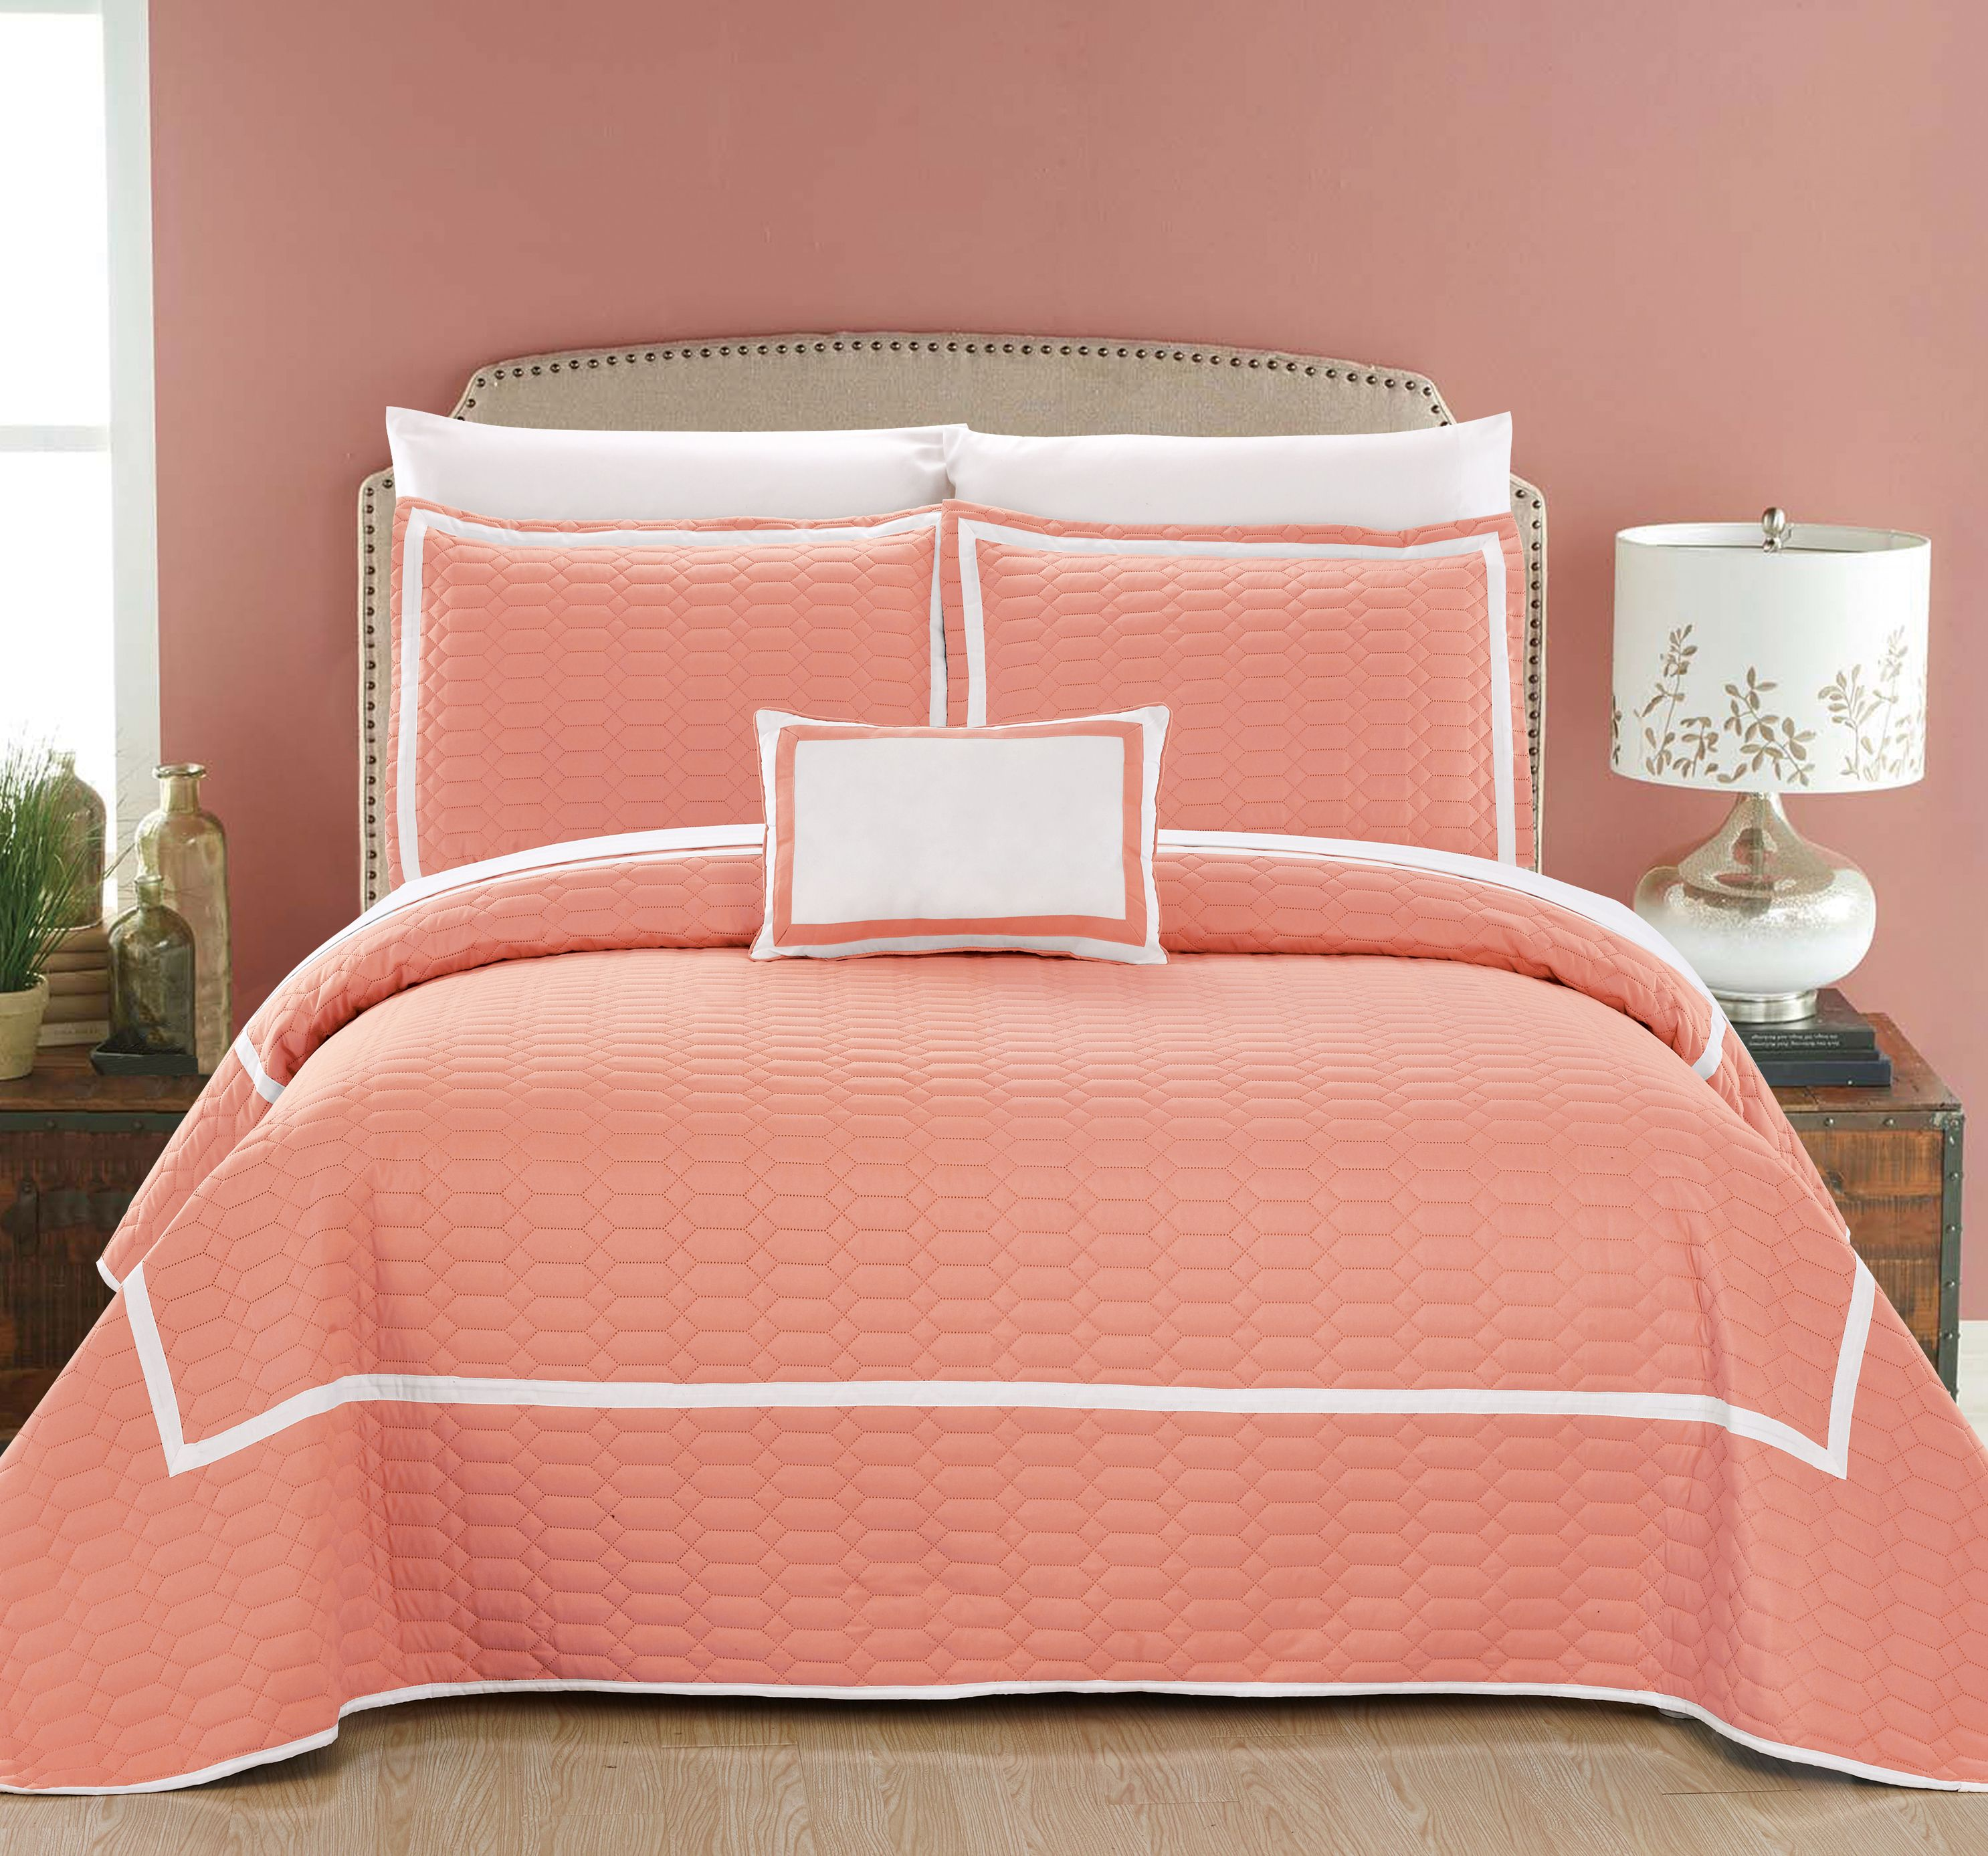 Chic Home Cummington 6 Piece Bed in a Bag Quilt Cover Set